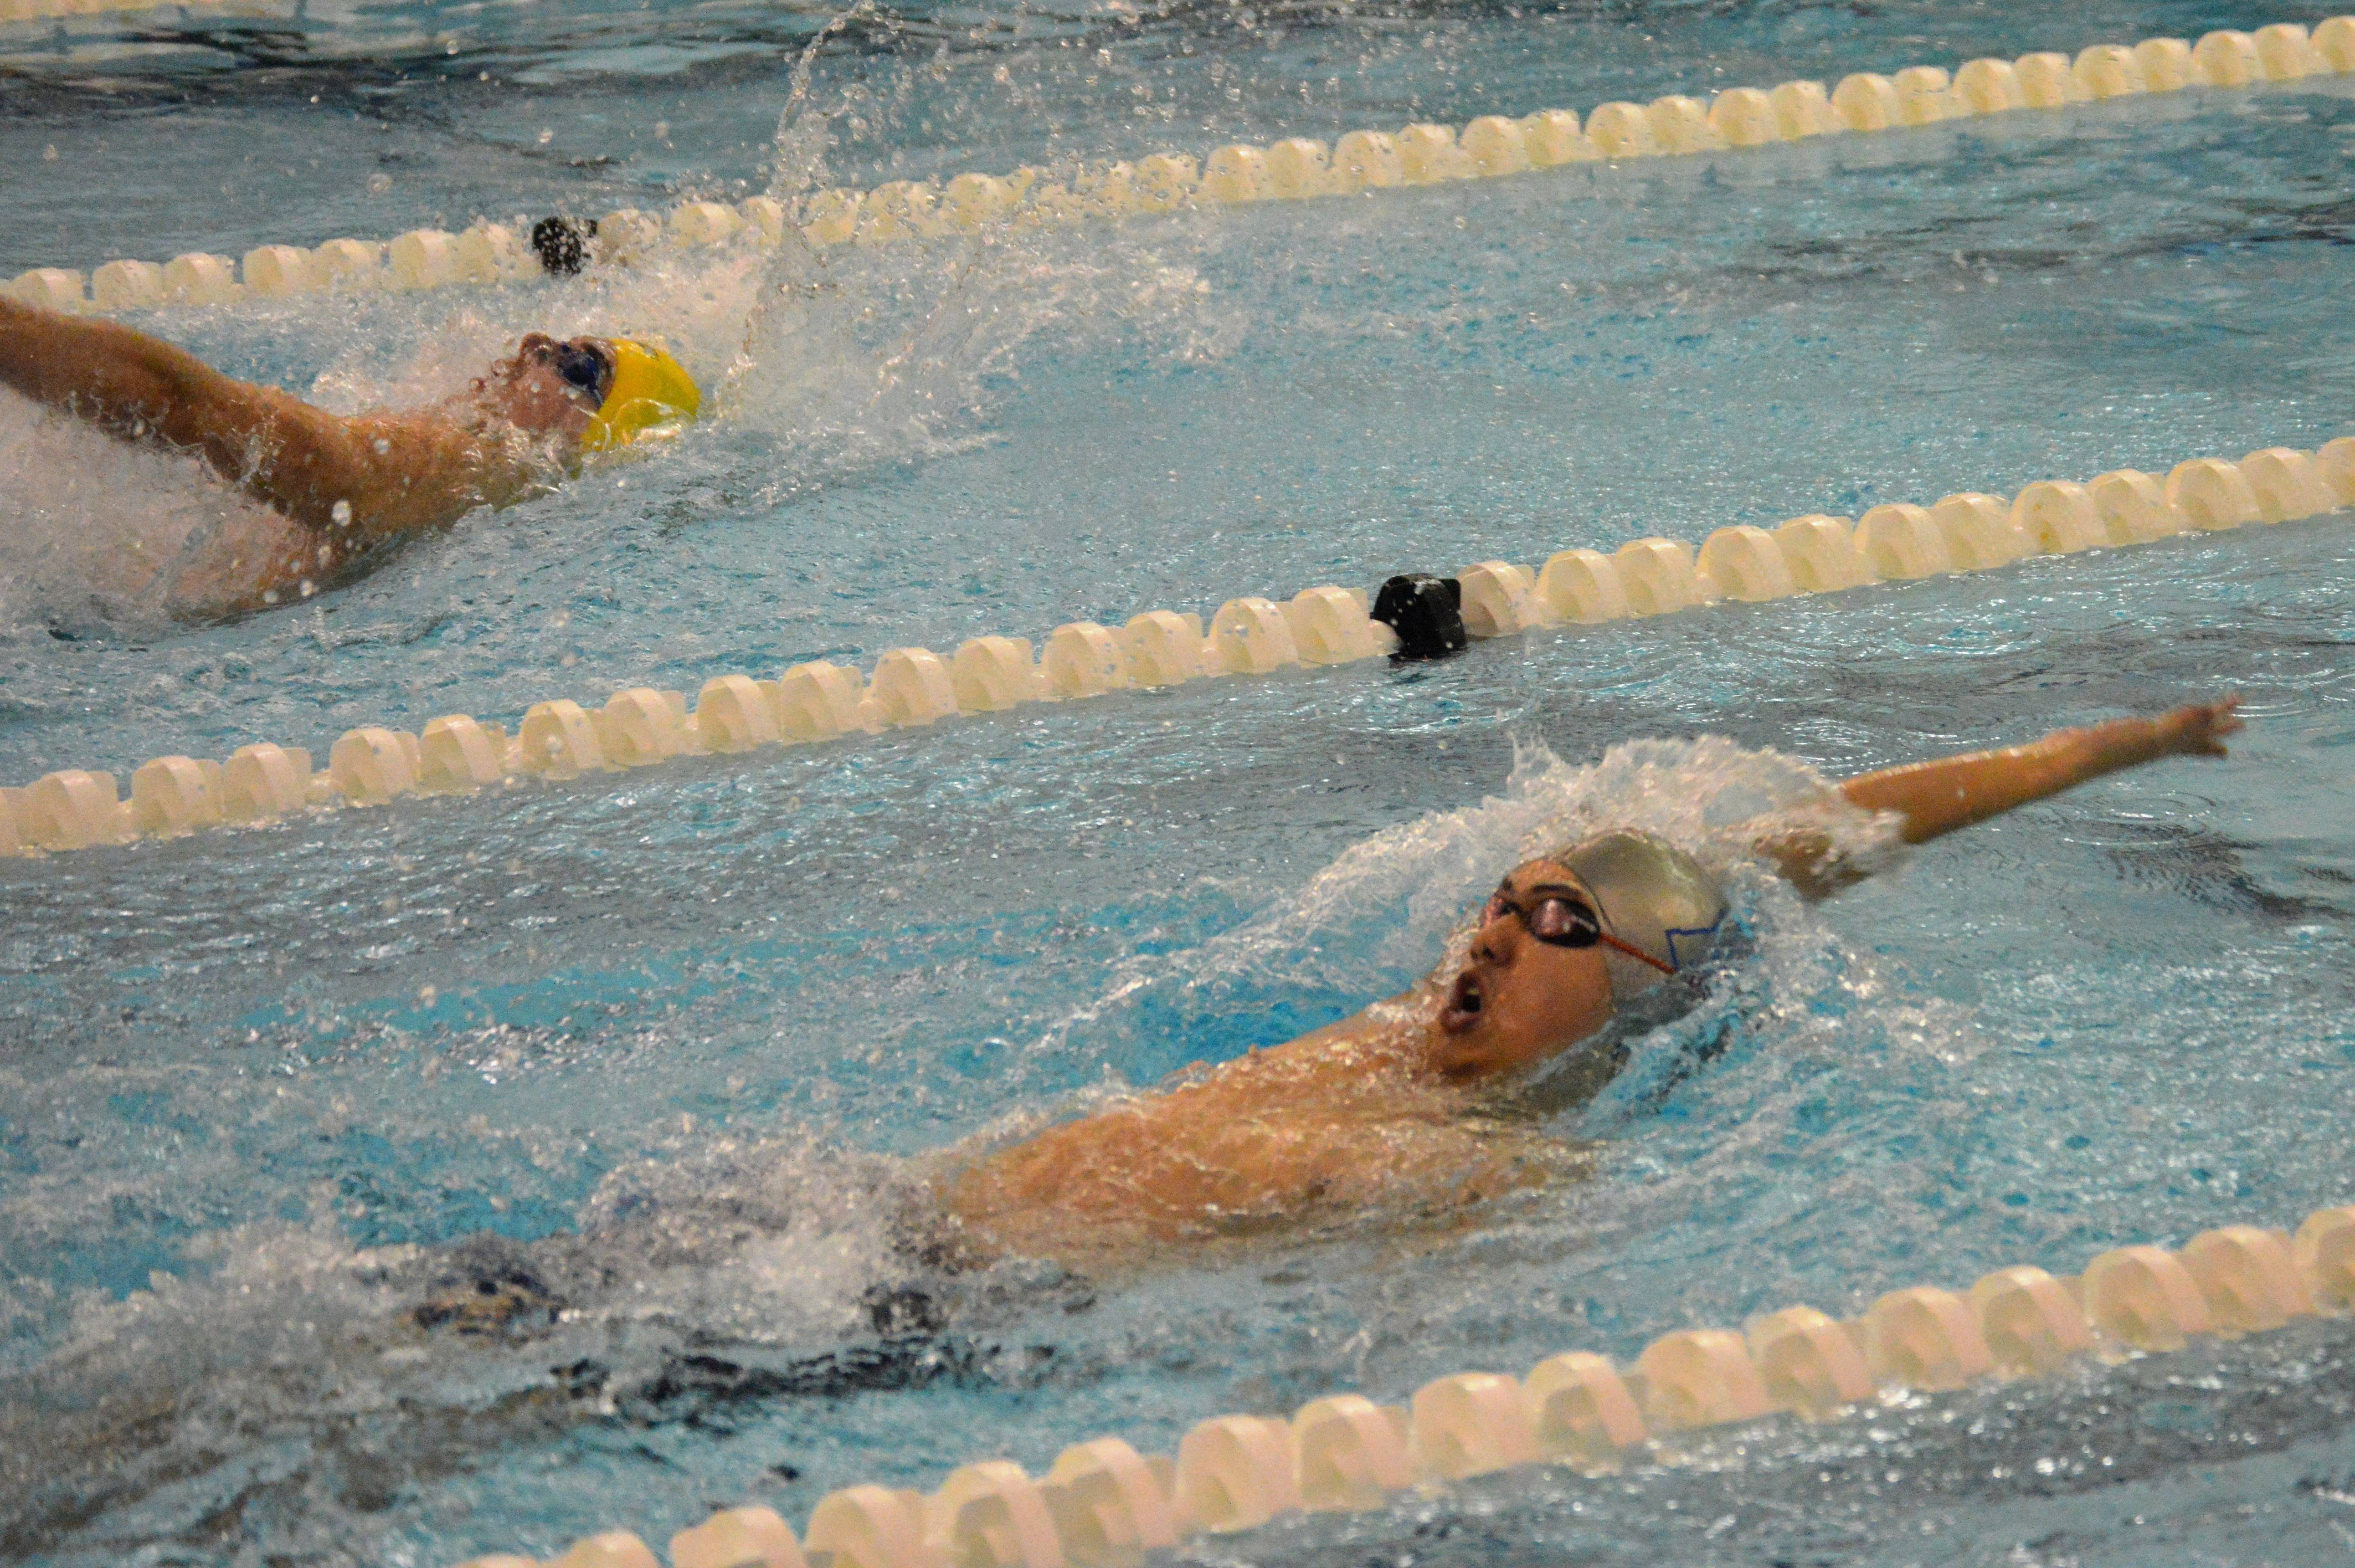 648f6e787e7705747e85_1-10-17_backstroke_race.JPG